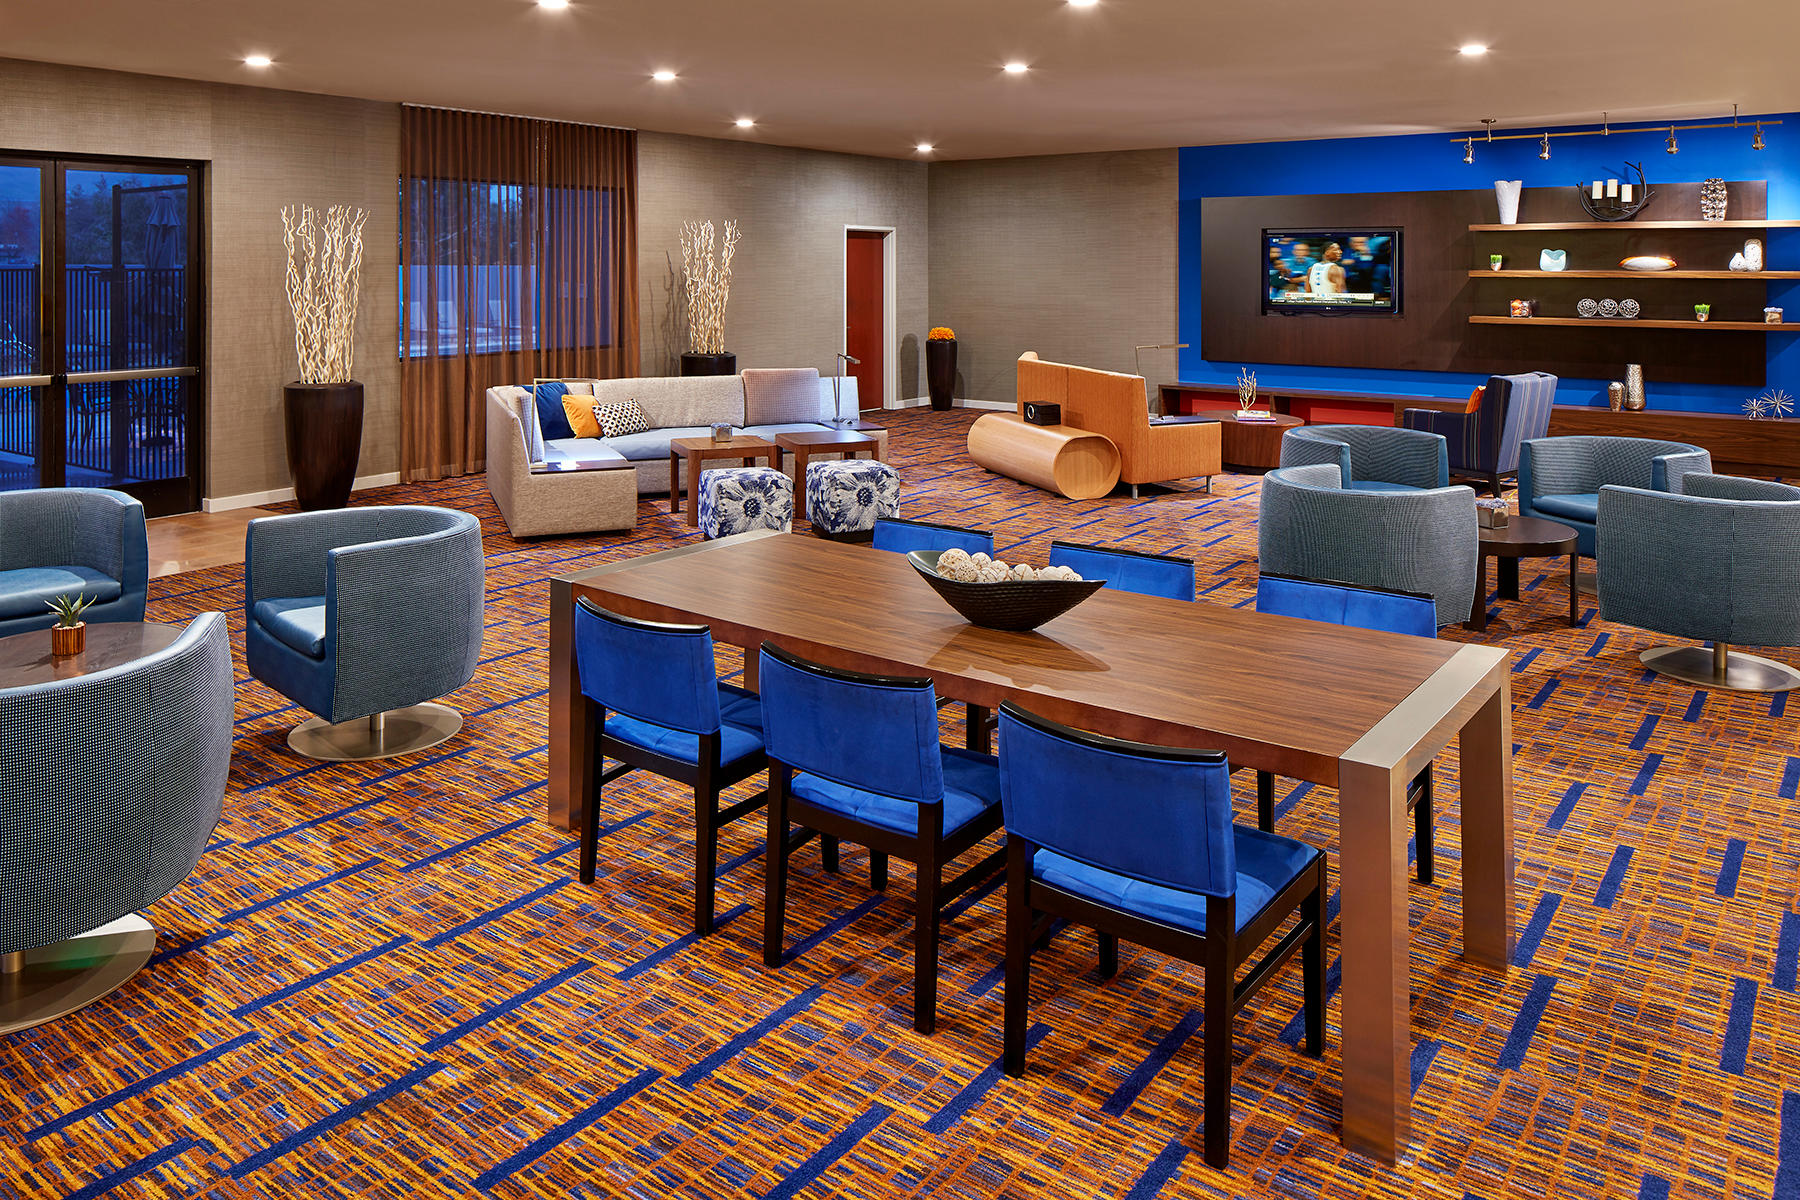 Courtyard by Marriott Vallejo Napa Valley image 6